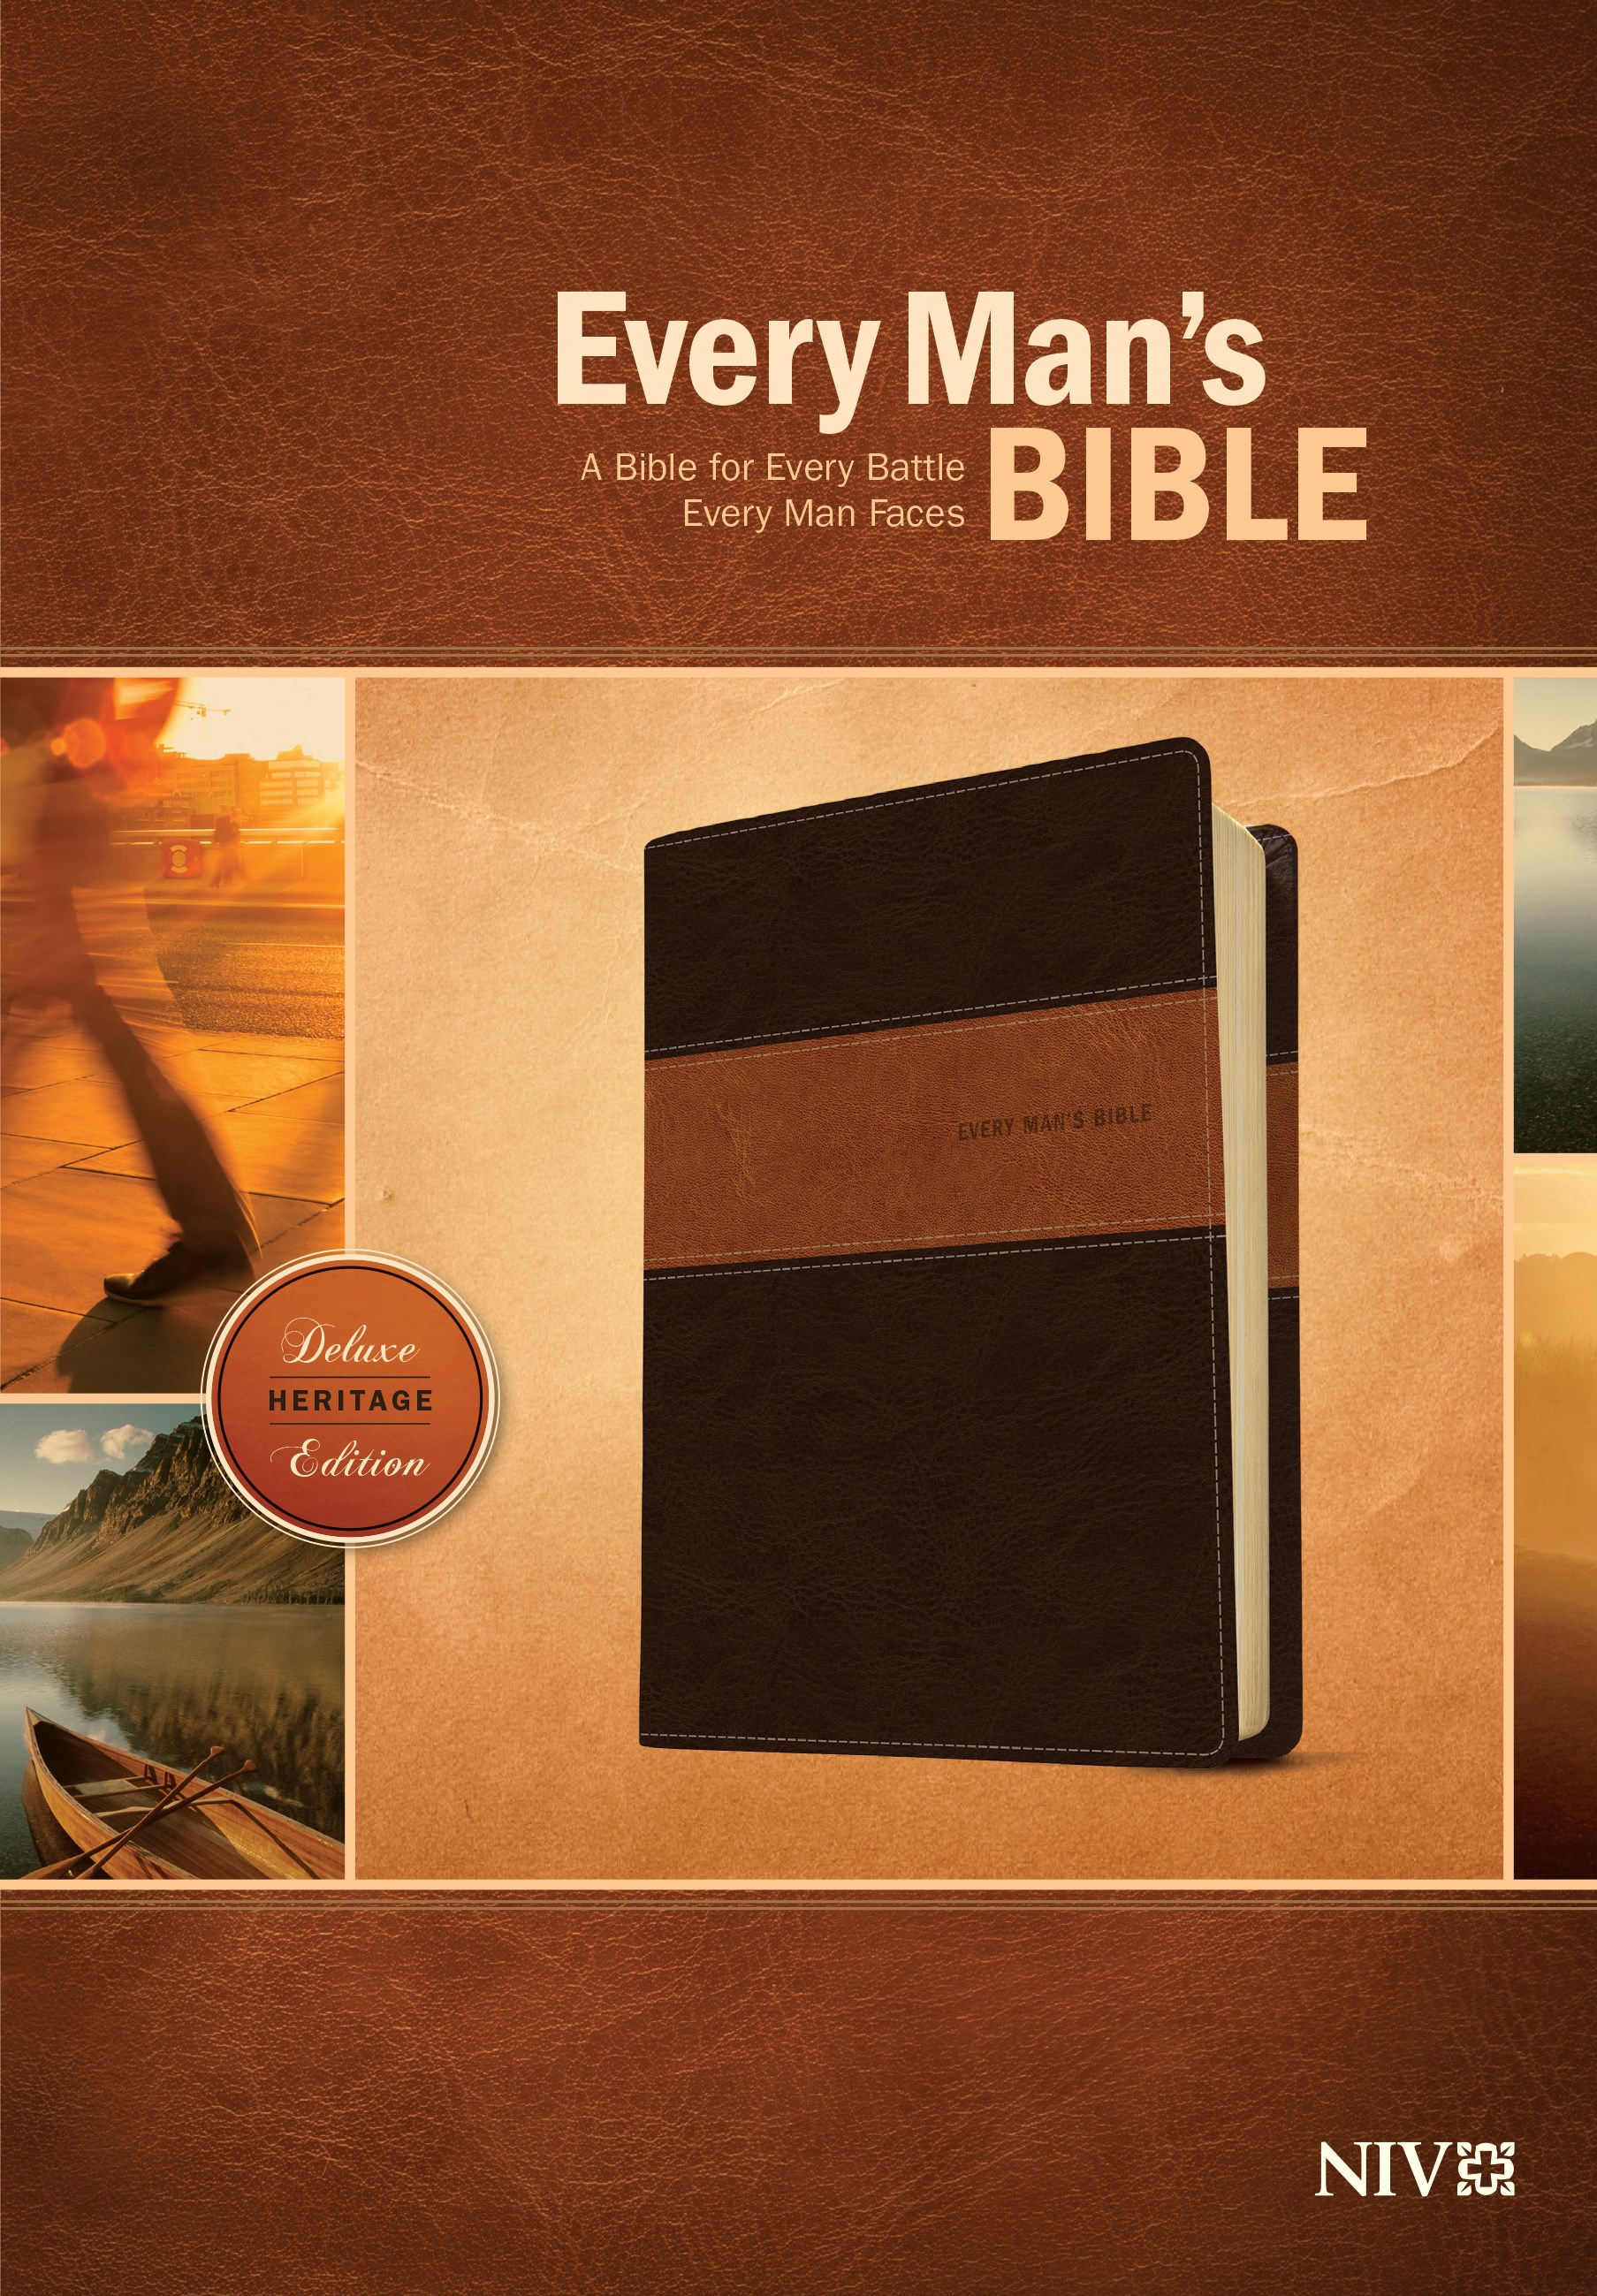 NIV Every Man's Bible-Deluxe Heritage Edition-Brown/Tan TuTone